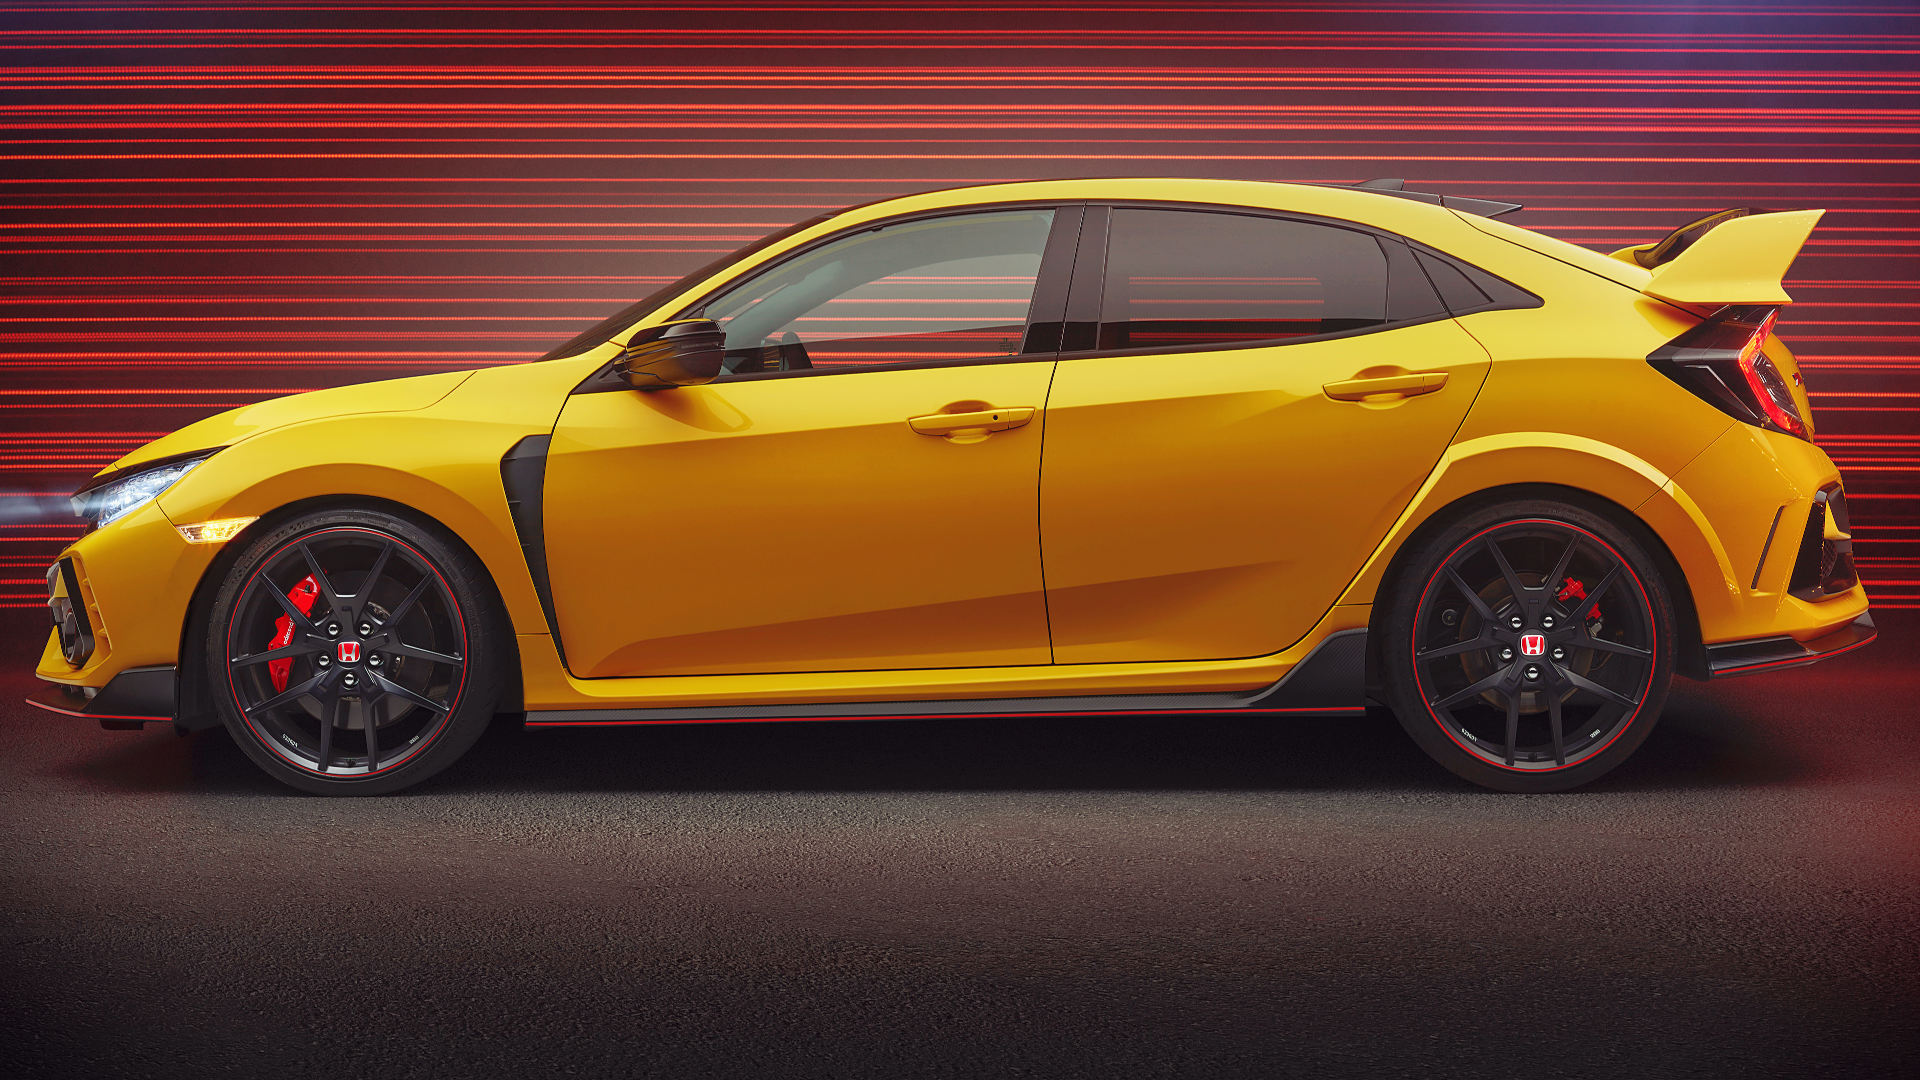 2021 Honda Civic Type R Limited Side Wallpaper